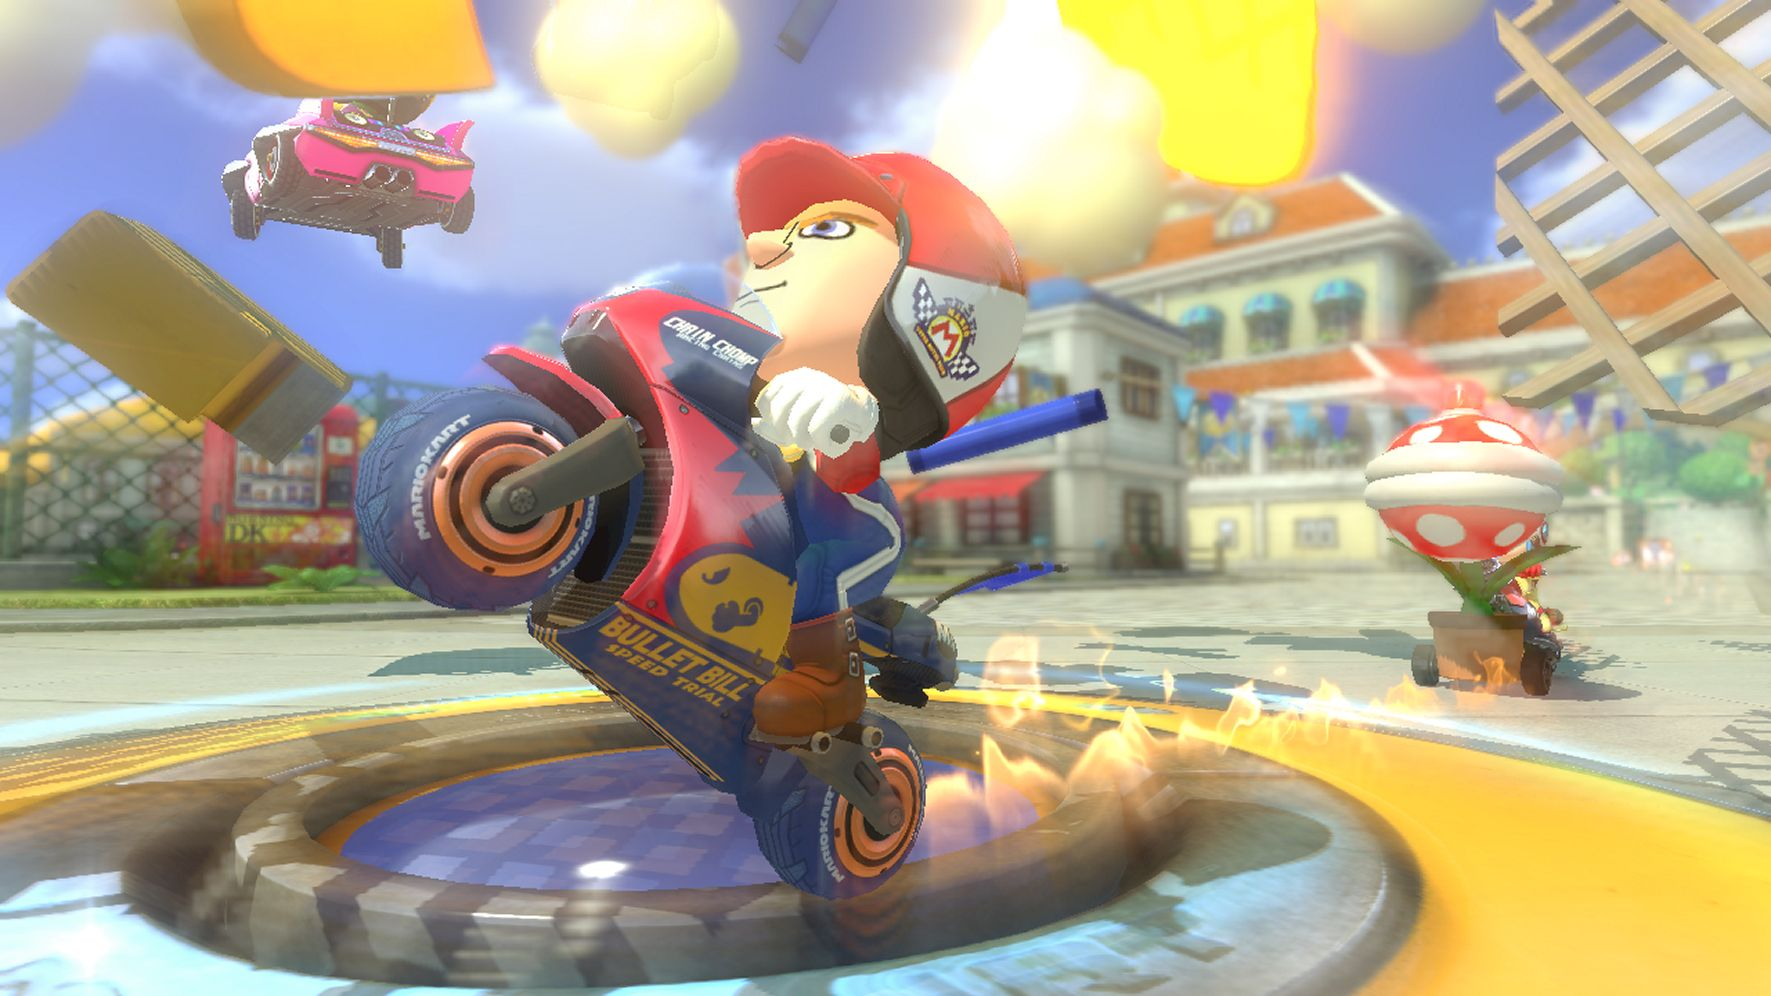 mario kart 8 deluxe overview trailer more details battle mode arenas and modes perfectly. Black Bedroom Furniture Sets. Home Design Ideas